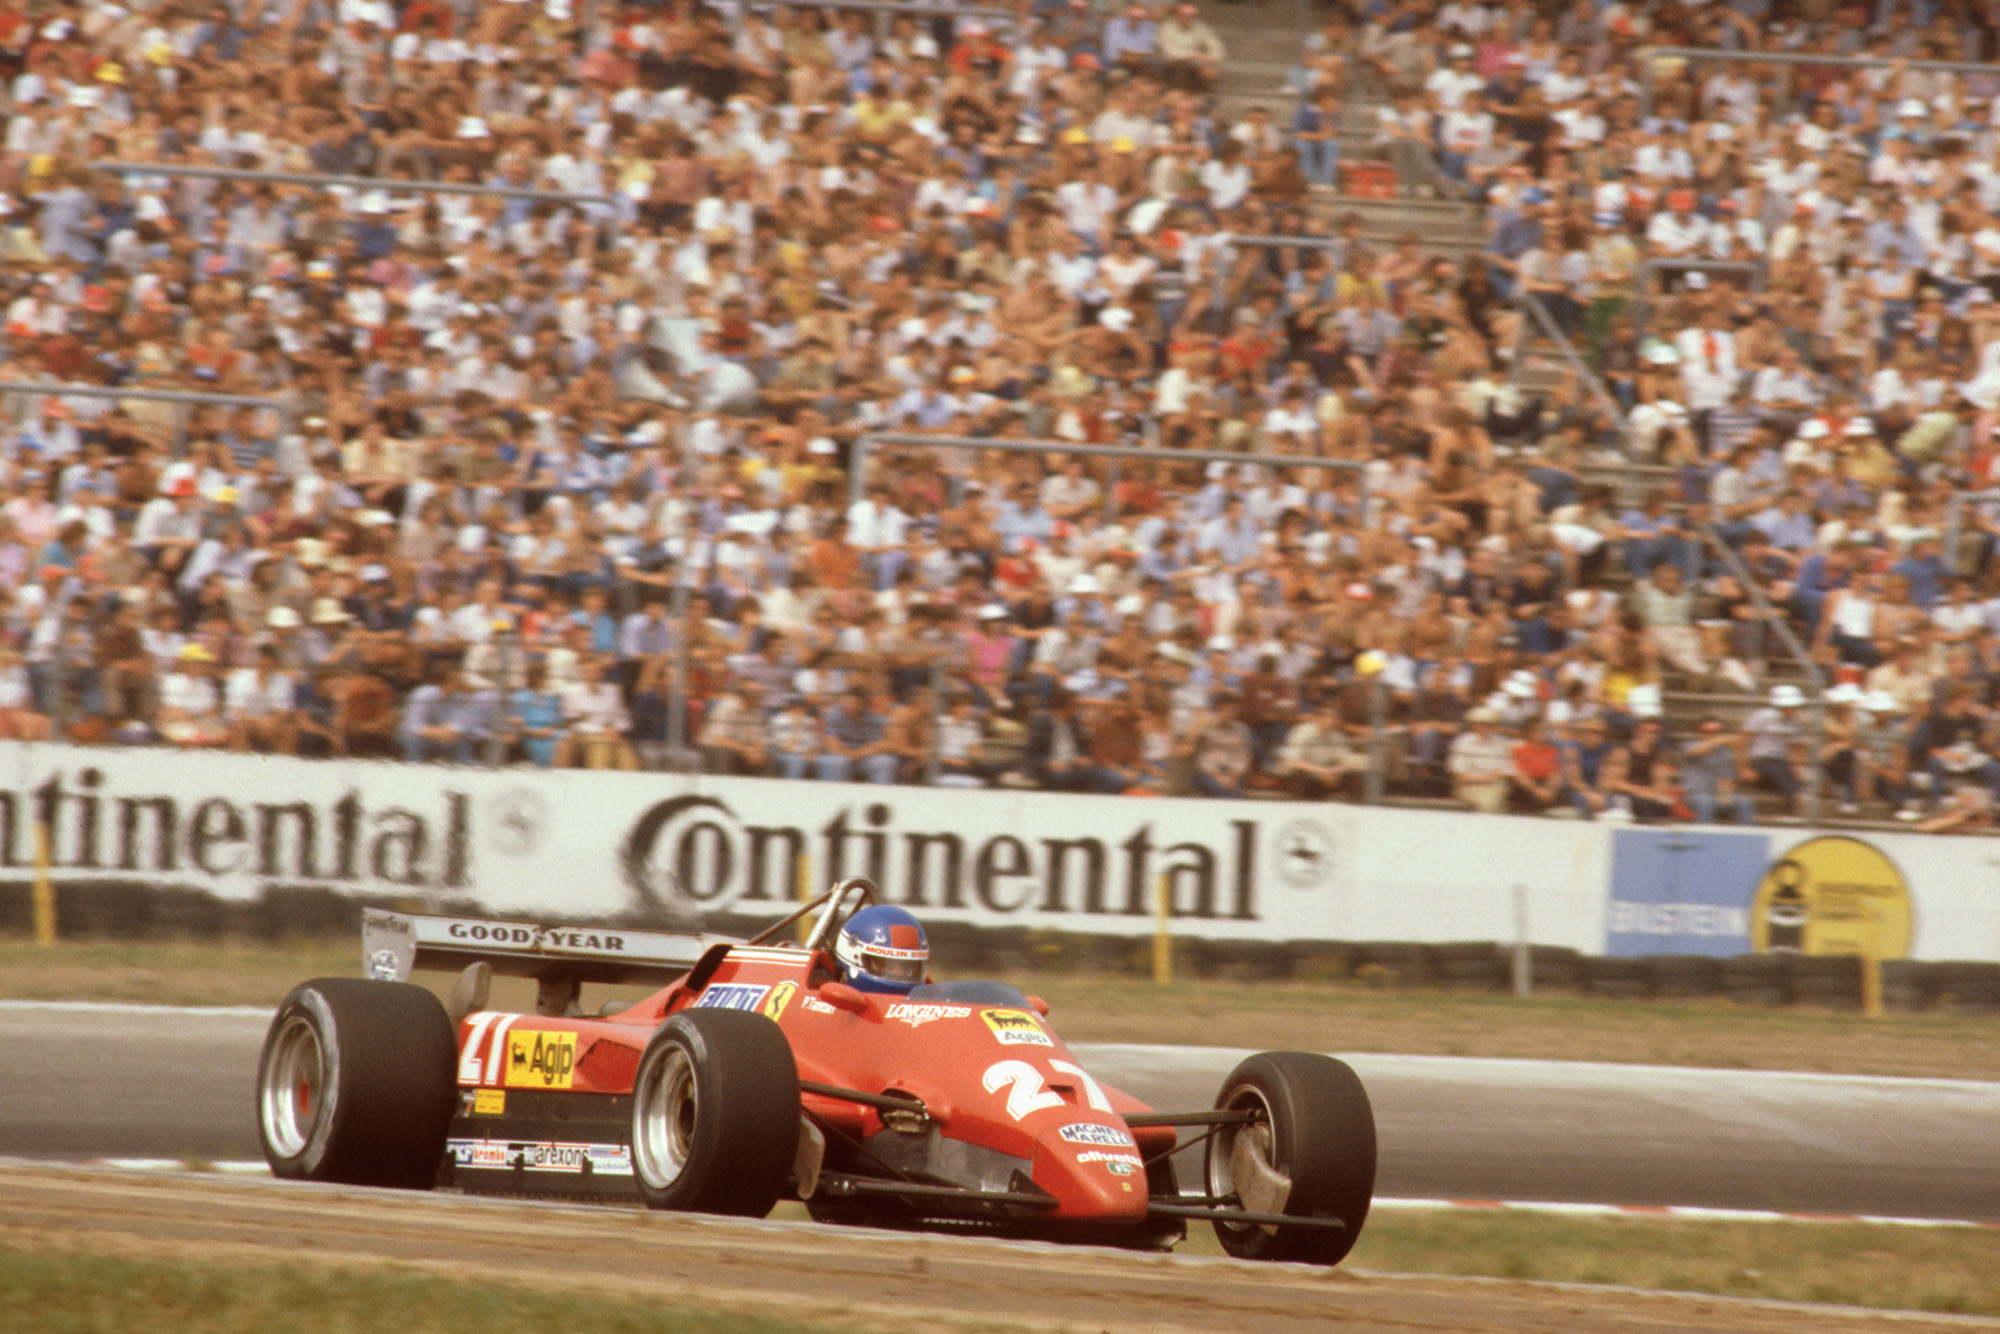 Patrick Tambay at the wheel of the Ferrari 126 C2 during the 1982 German Grand Prix which he went on to win